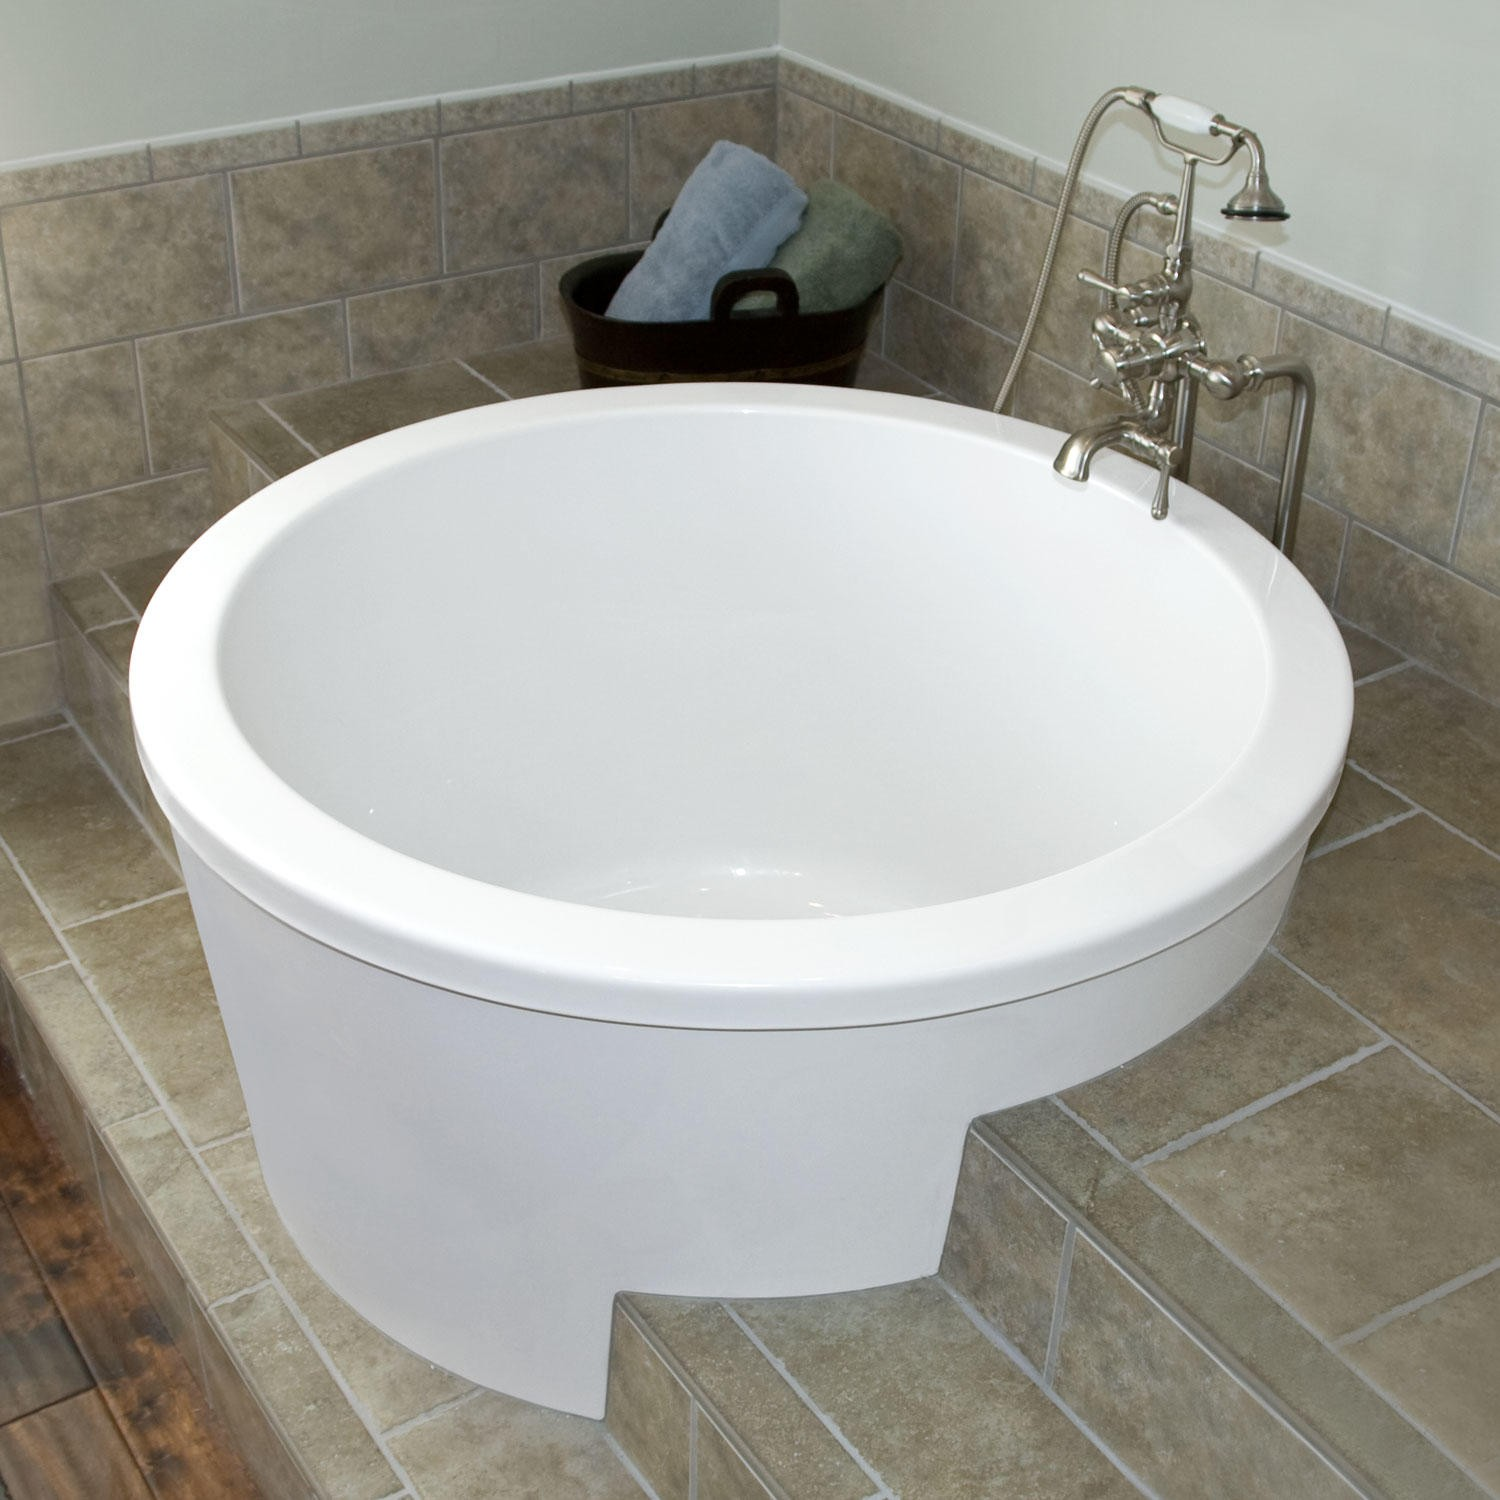 round japanese soaking tub - Ofuro Soaking Tubs: The Vibe Of Japan ...